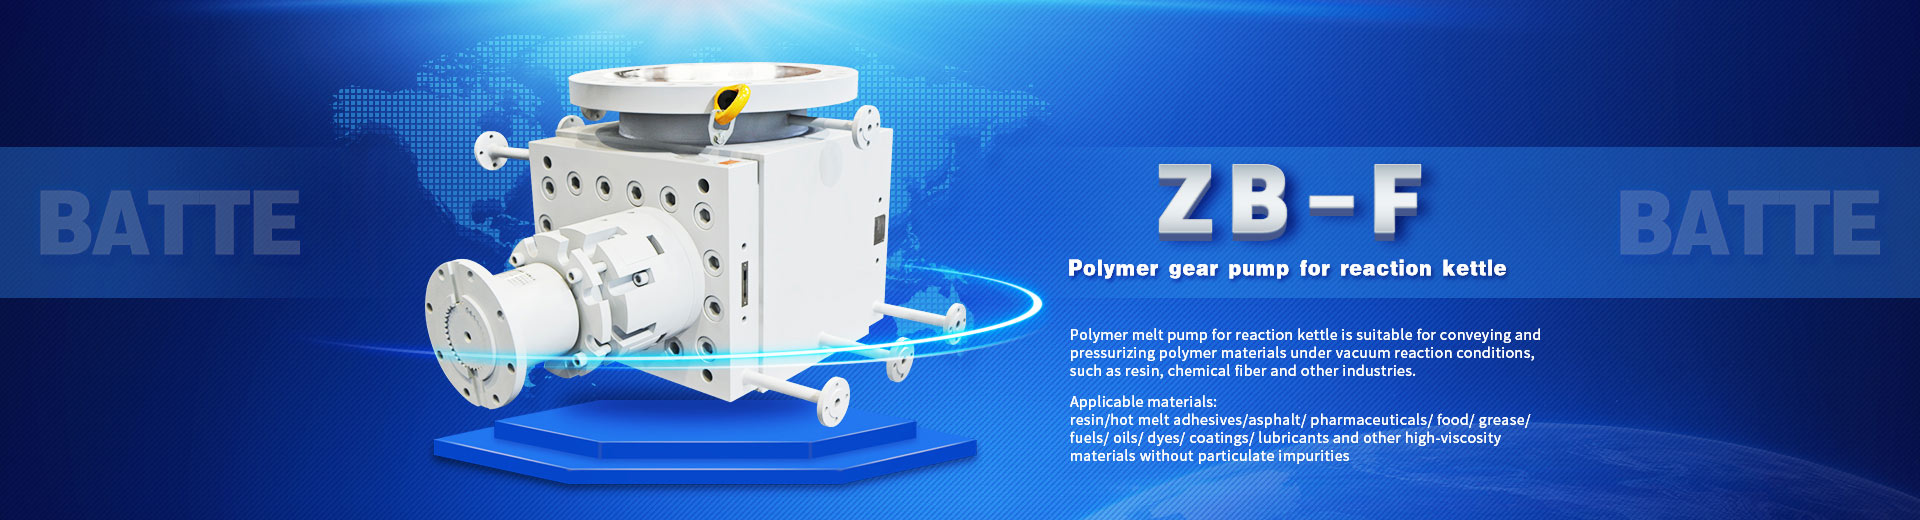 Batte Plastic melt pump for extruder